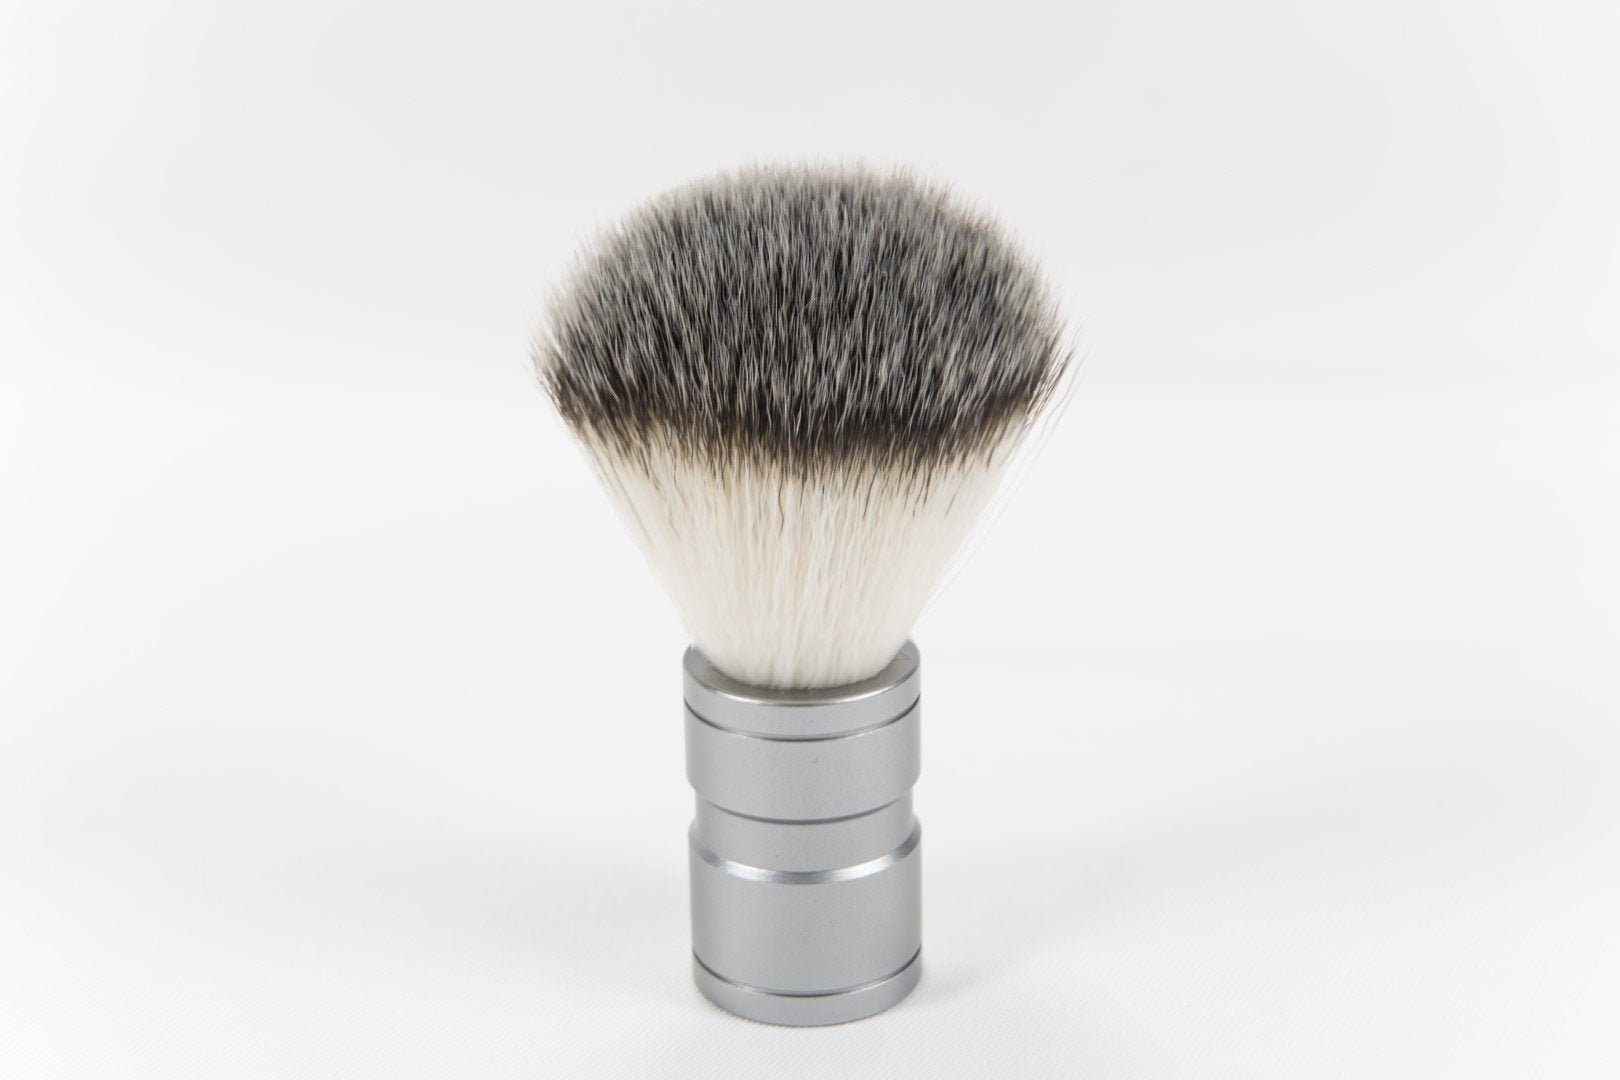 boobam shaving bowl + brush-boobam